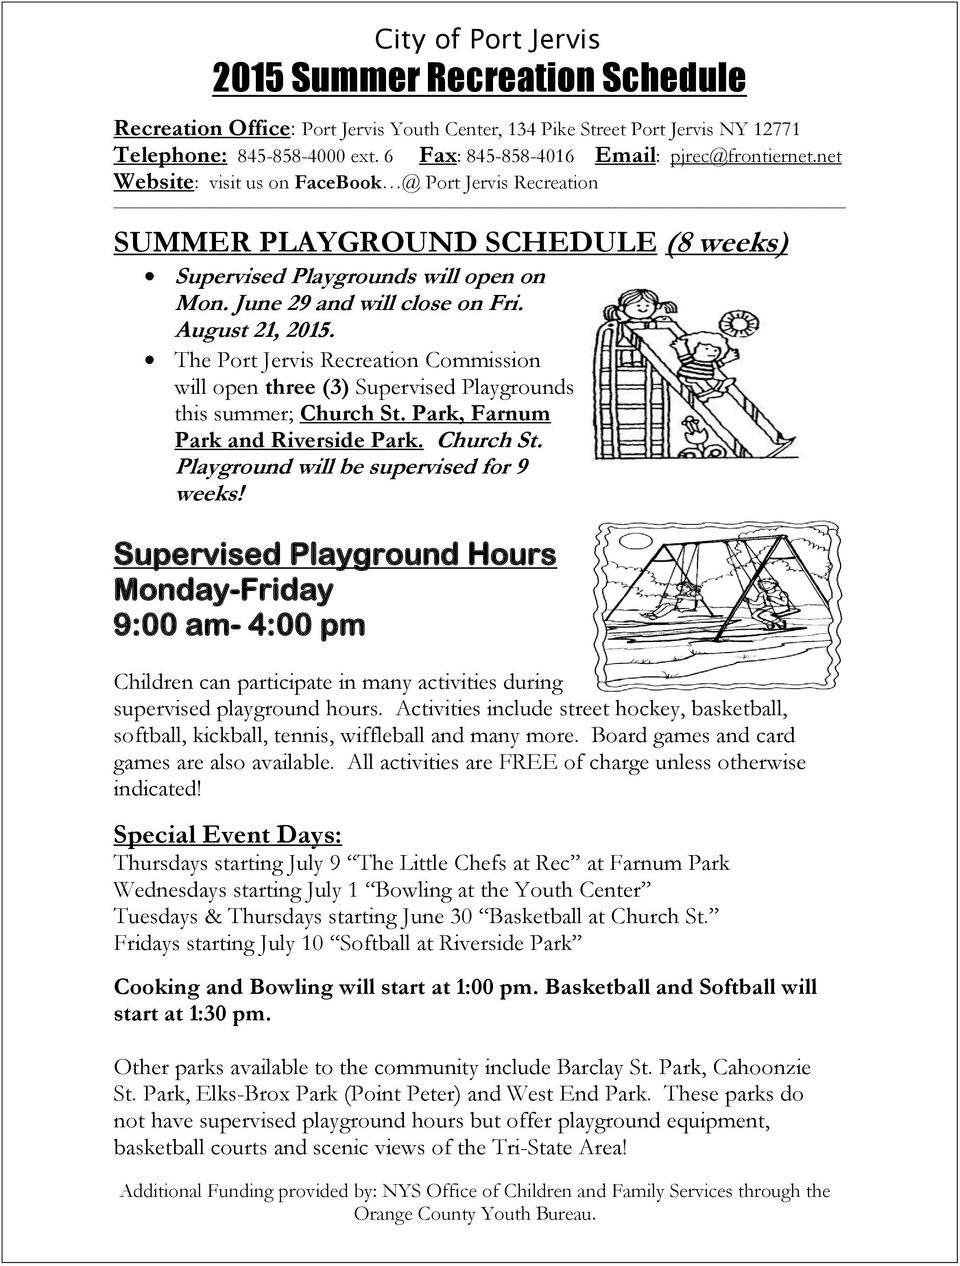 June 29 and will close on Fri. August 21, 2015. The Port Jervis Recreation Commission will open three (3) Supervised Playgrounds this summer; Church St. Park, Farnum Park and Riverside Park.